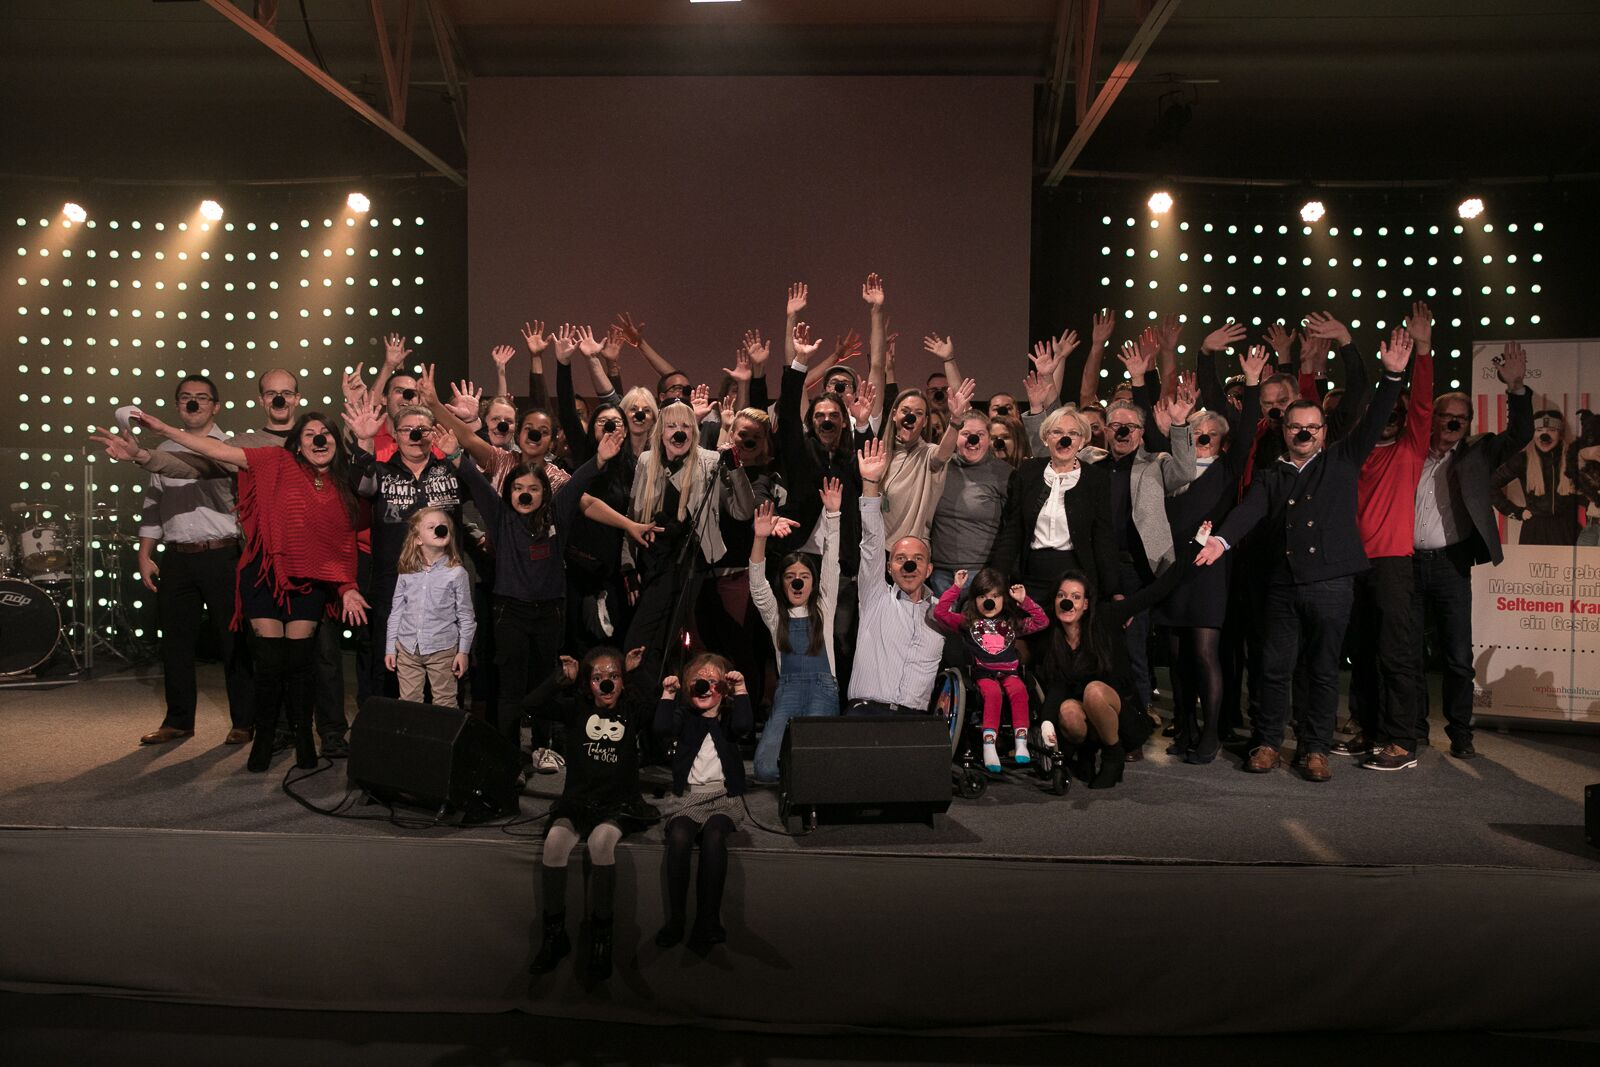 Grand Black Nose Concert - Günther Novak bei orphanhealthcare - Foundation for rare diseases